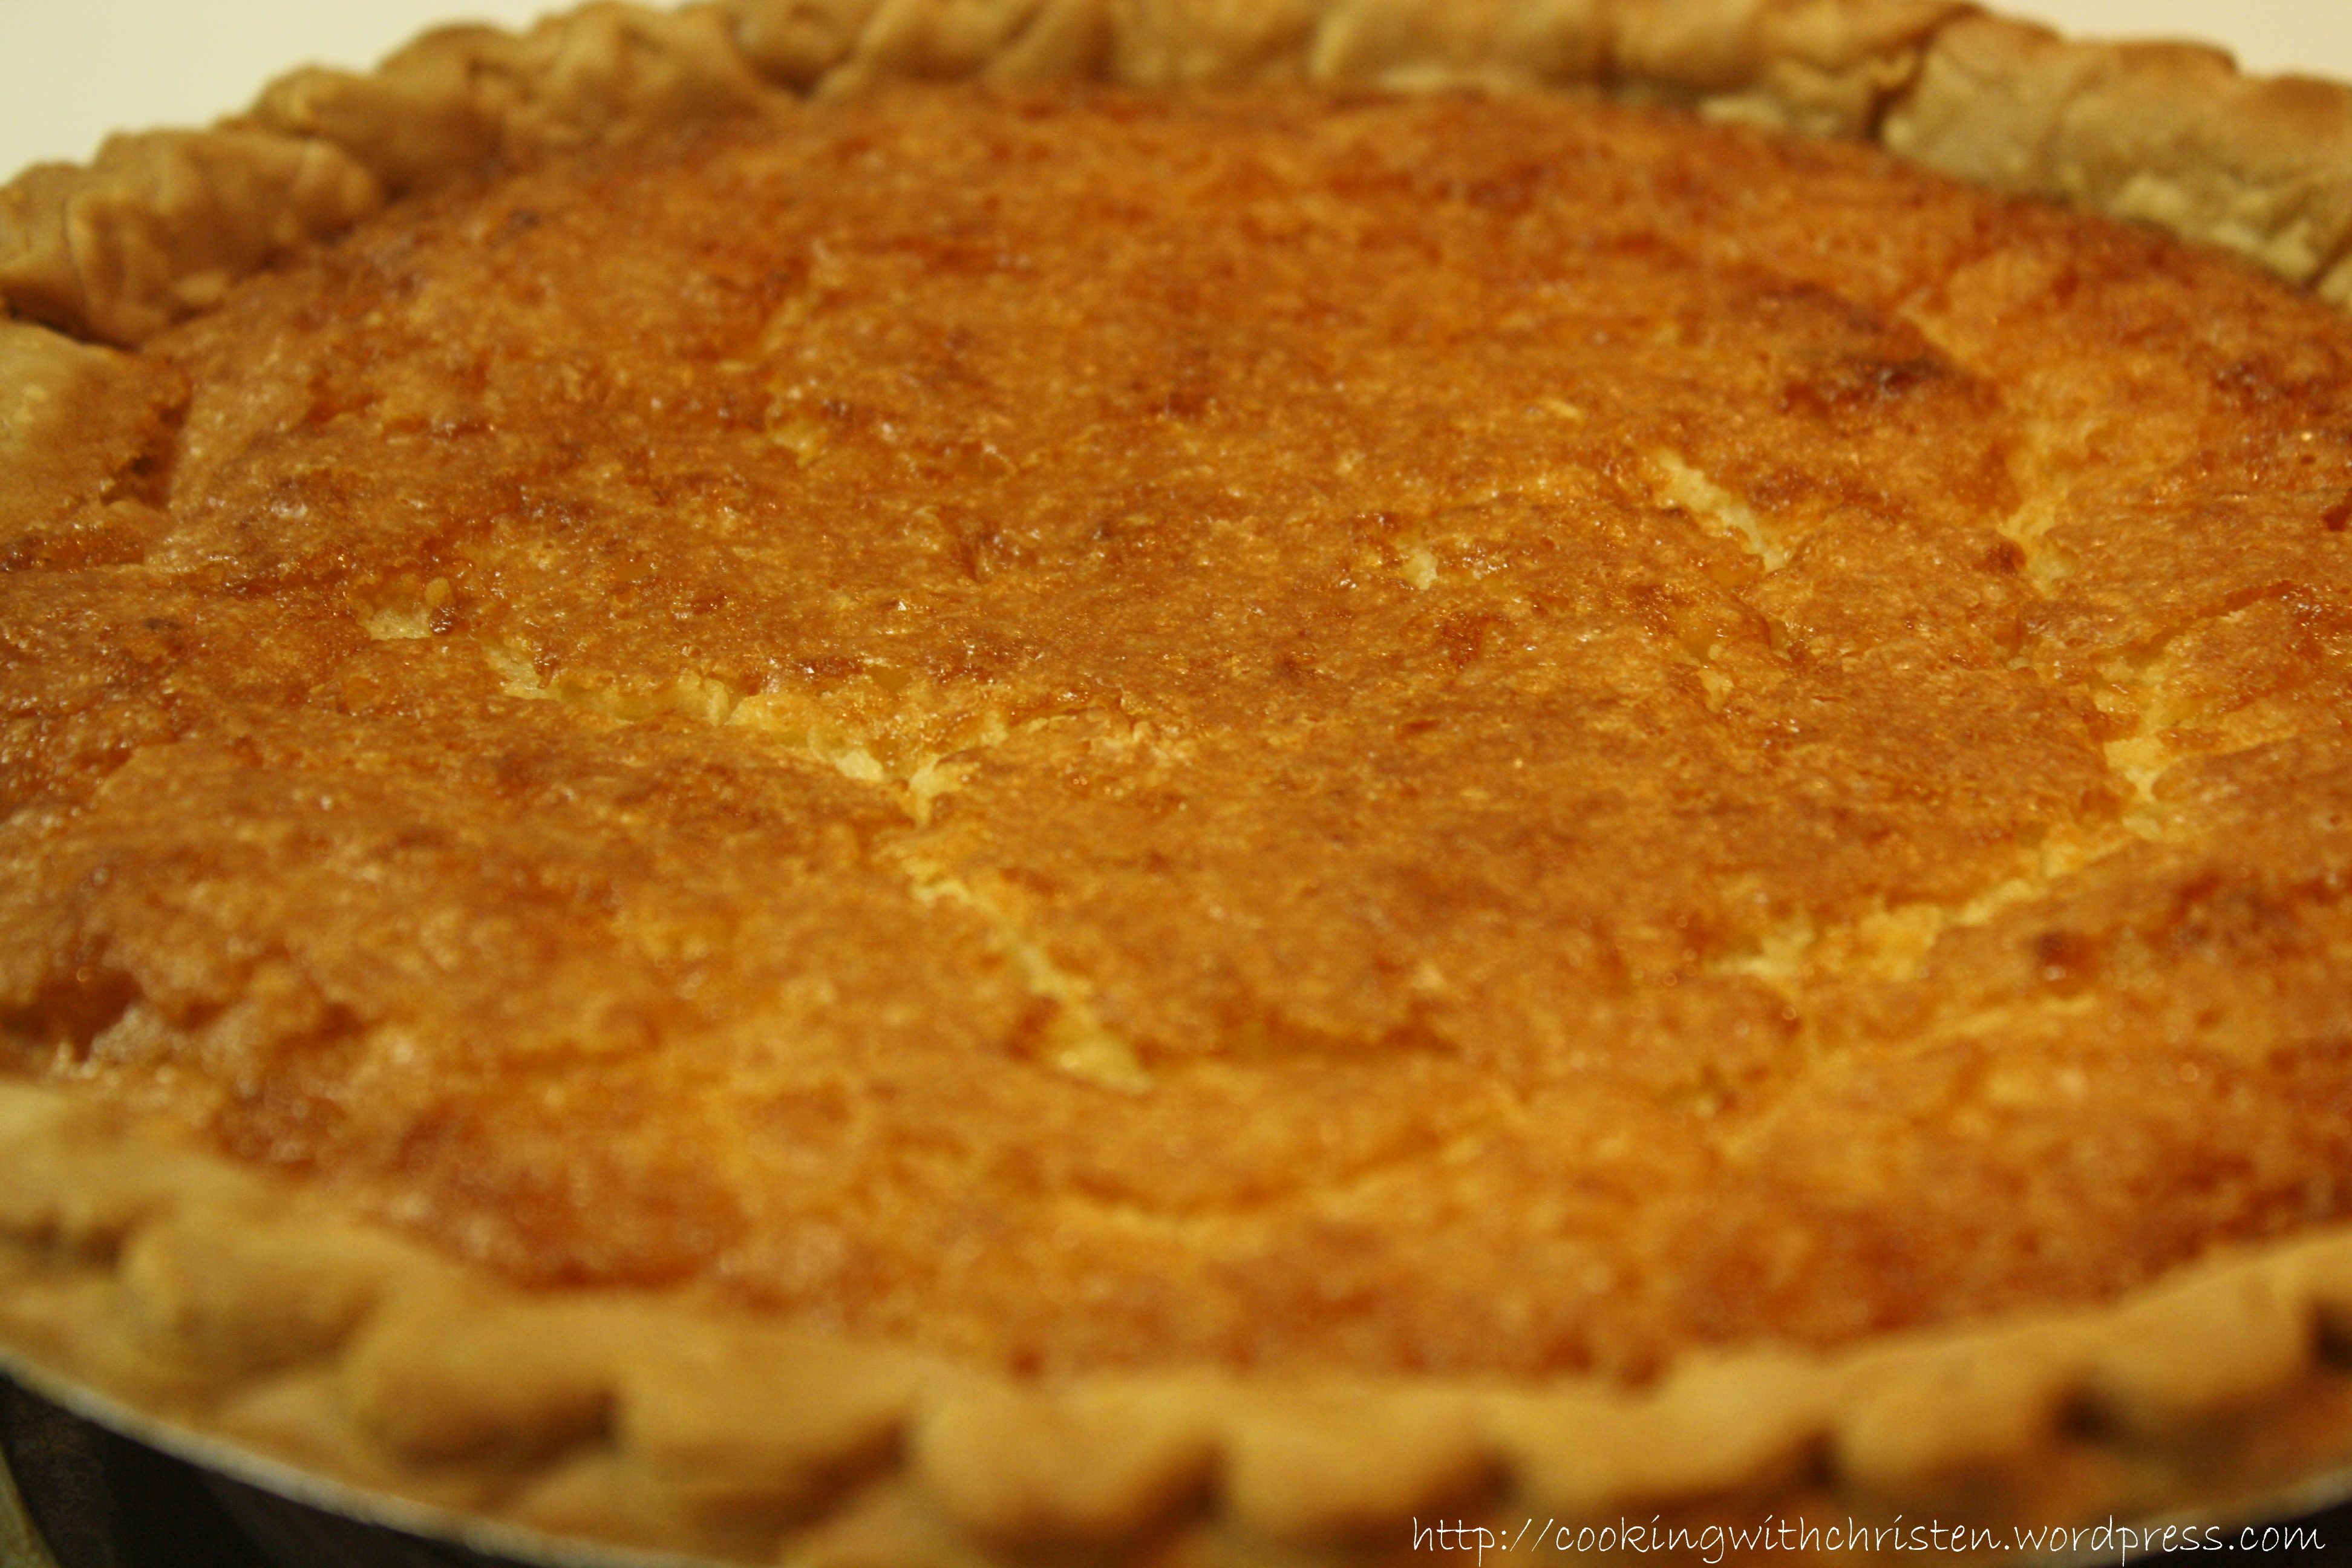 Buttermilk Pie | Cooking With Christen